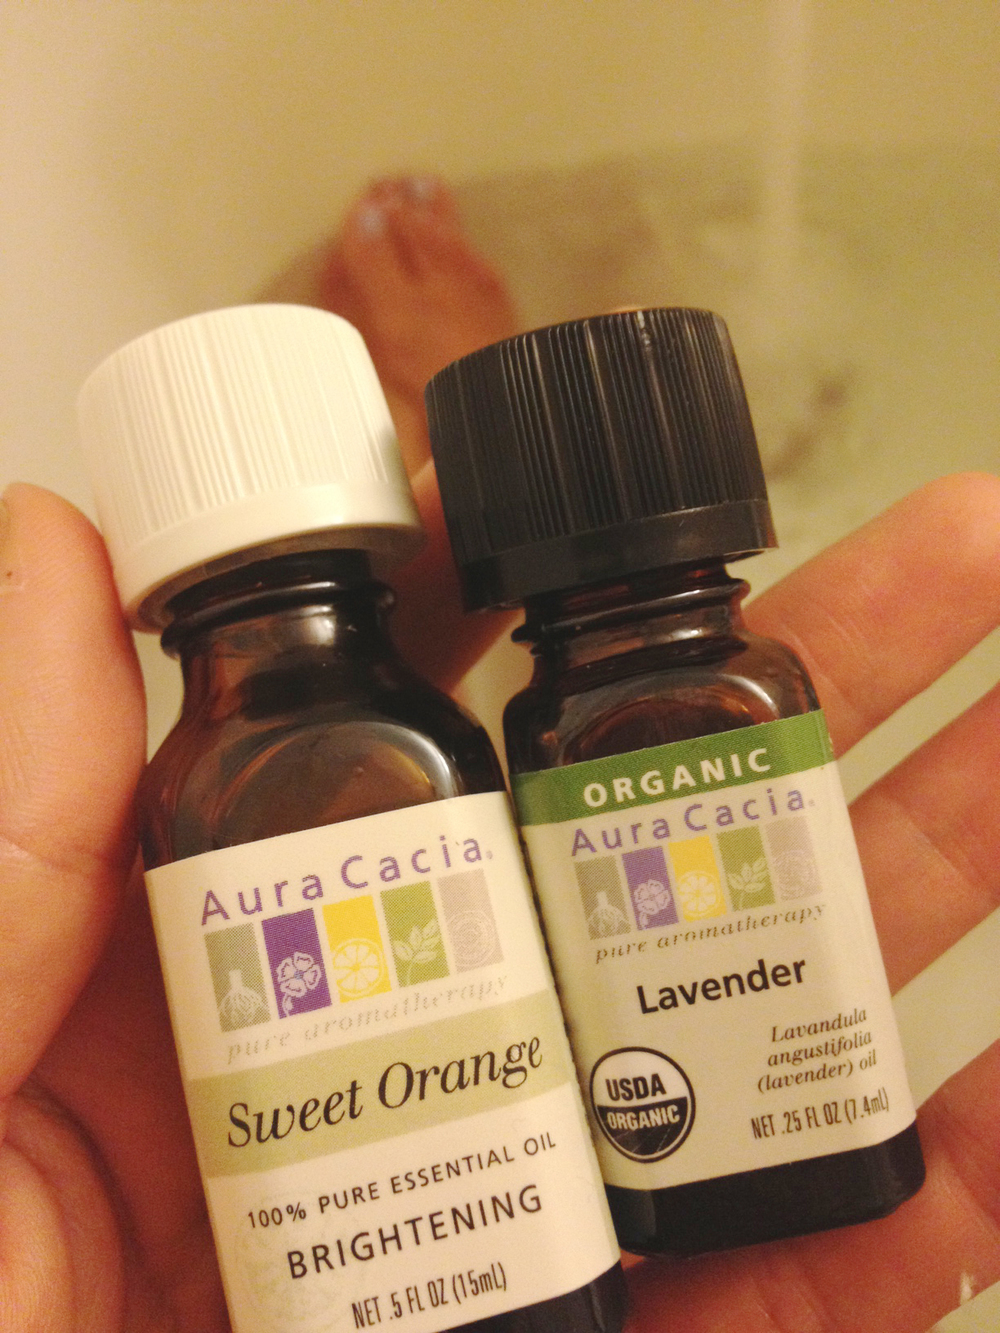 Sweet Orange and Lavender Essential Oils